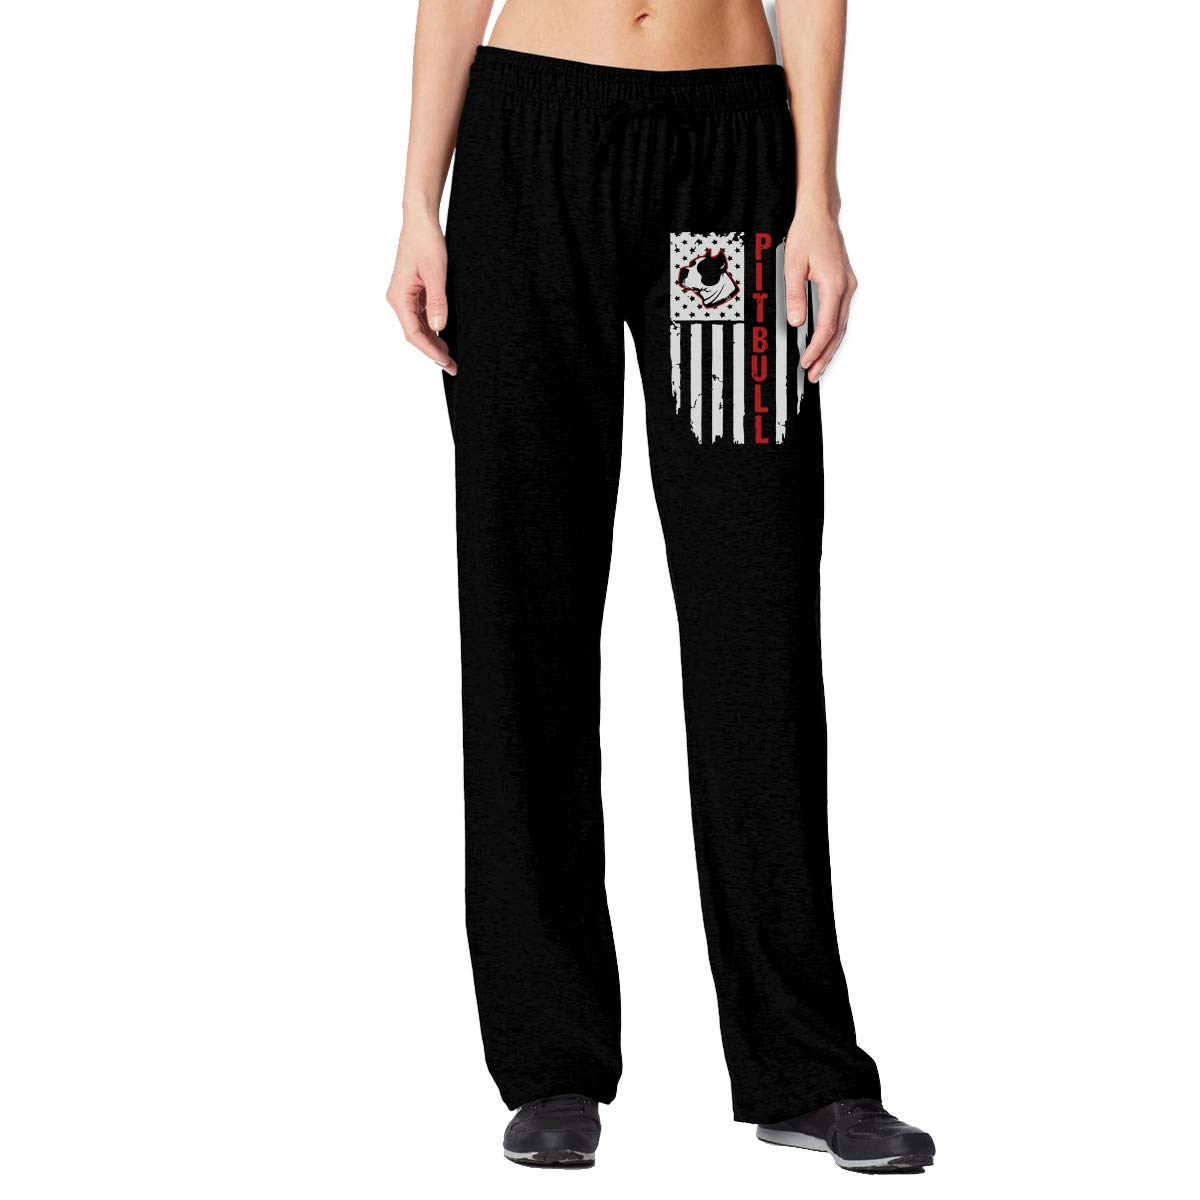 ANWK2-1 Pitbull Flag Patriotic American Flag Womens Sweatpants with Pockets Fitness Pants